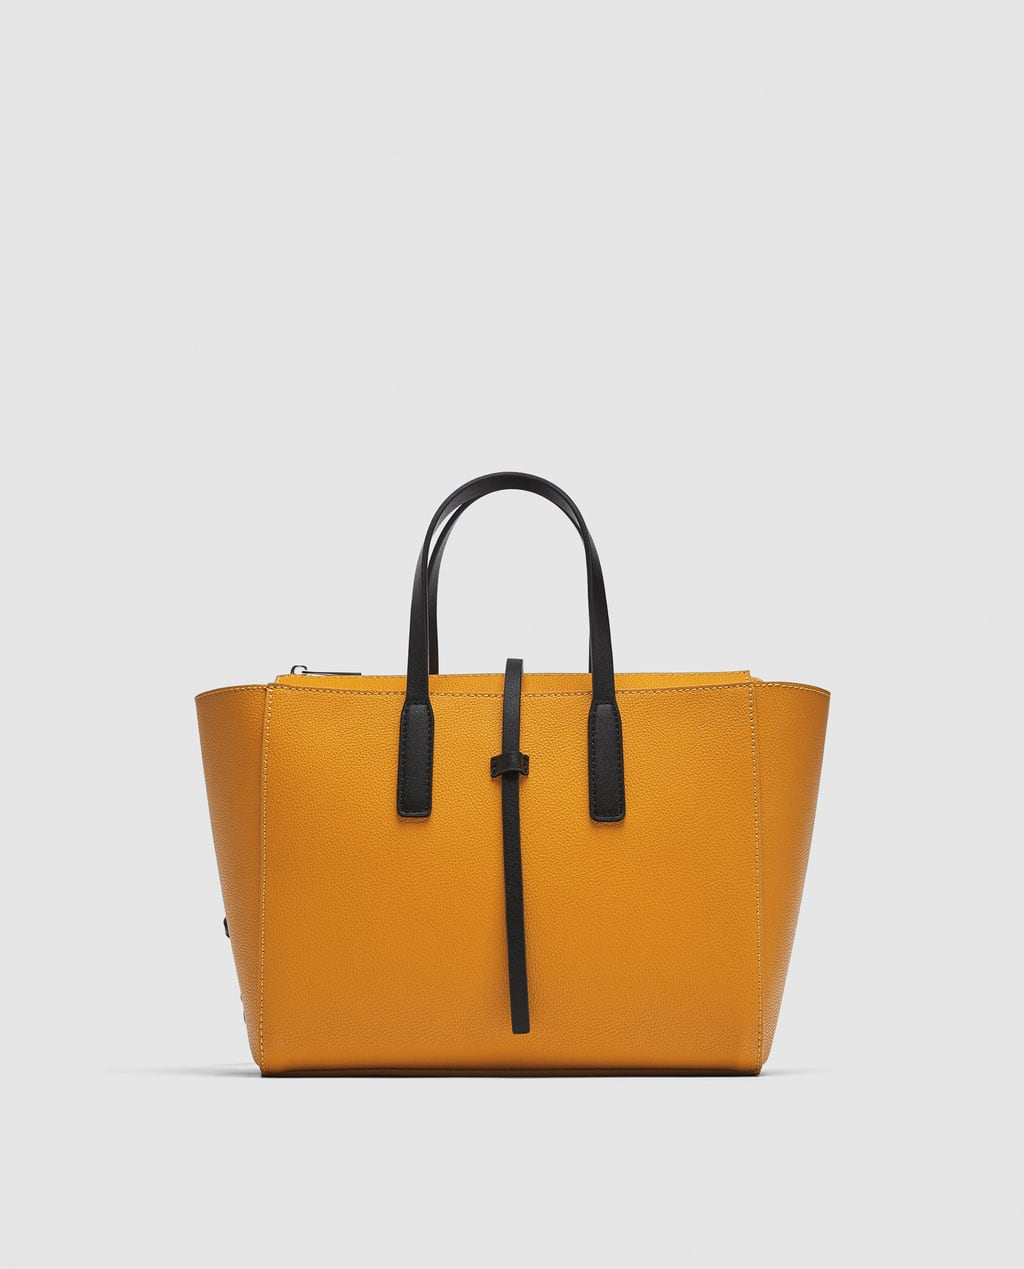 - MINI TOTE BAG WITH CONTRASTING HANDLESDETAILS25.99 CAD